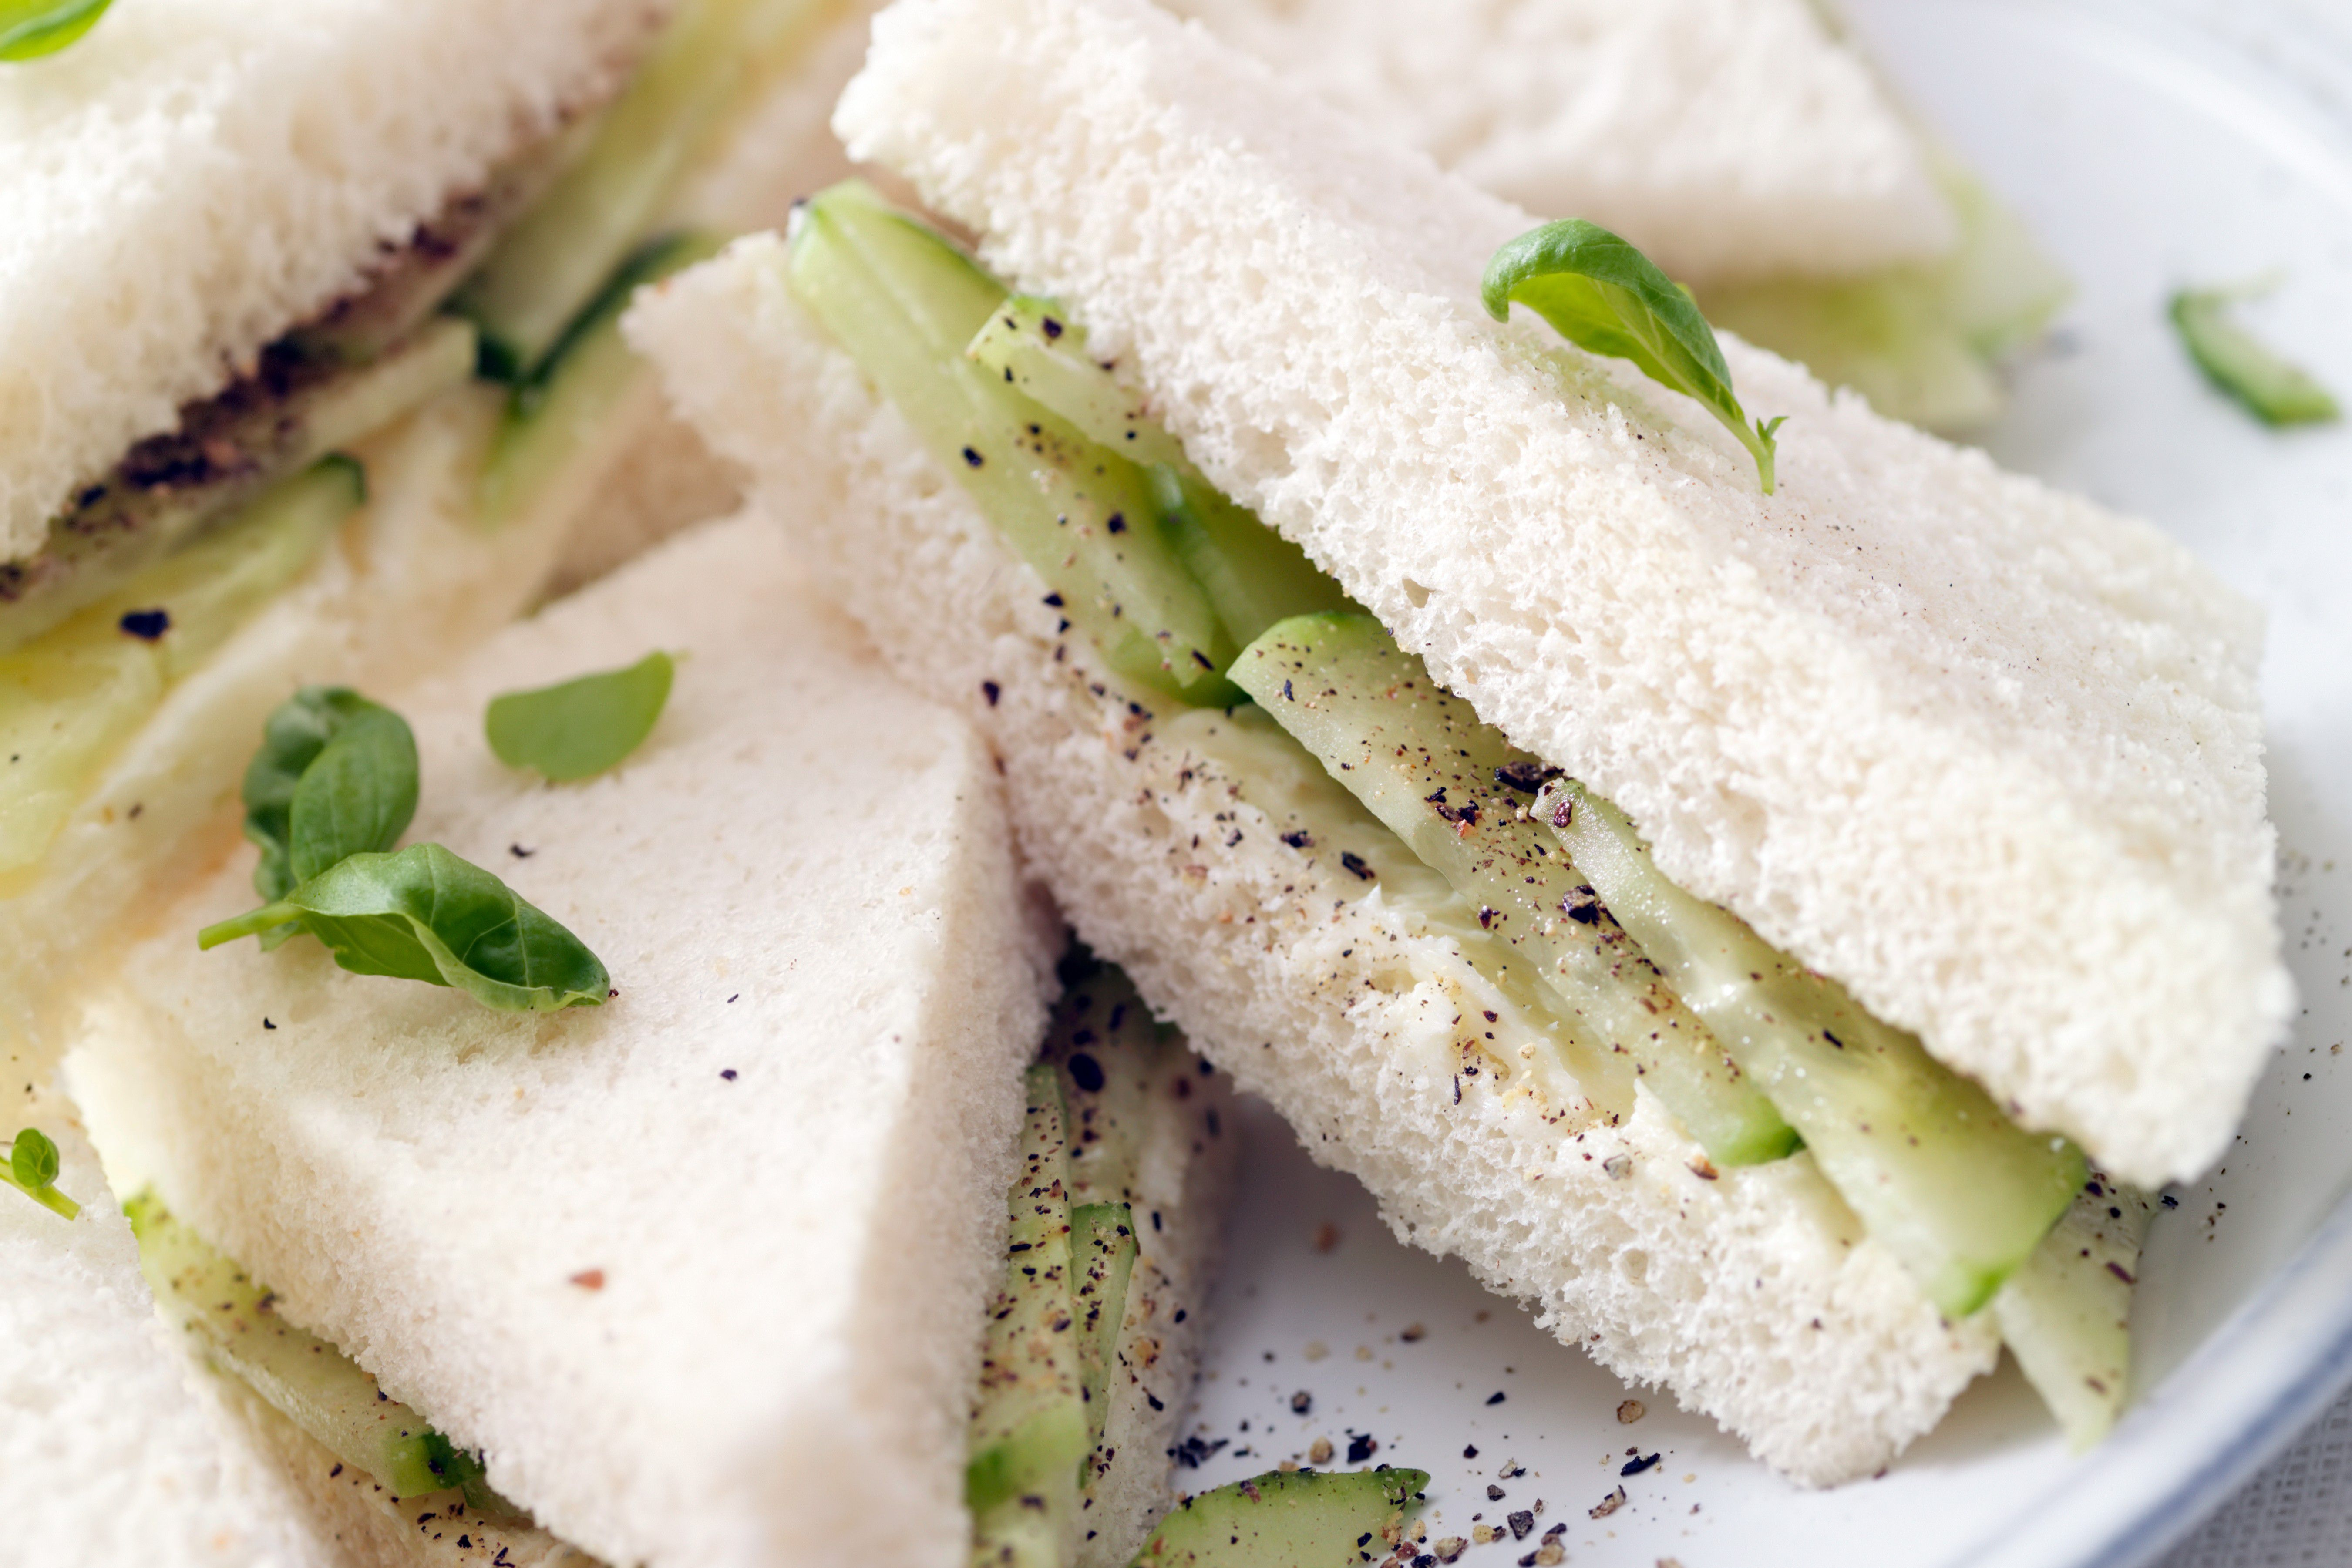 Cooling cucumber and refreshing mint make an easy no-cook recipe for finger sandwiches